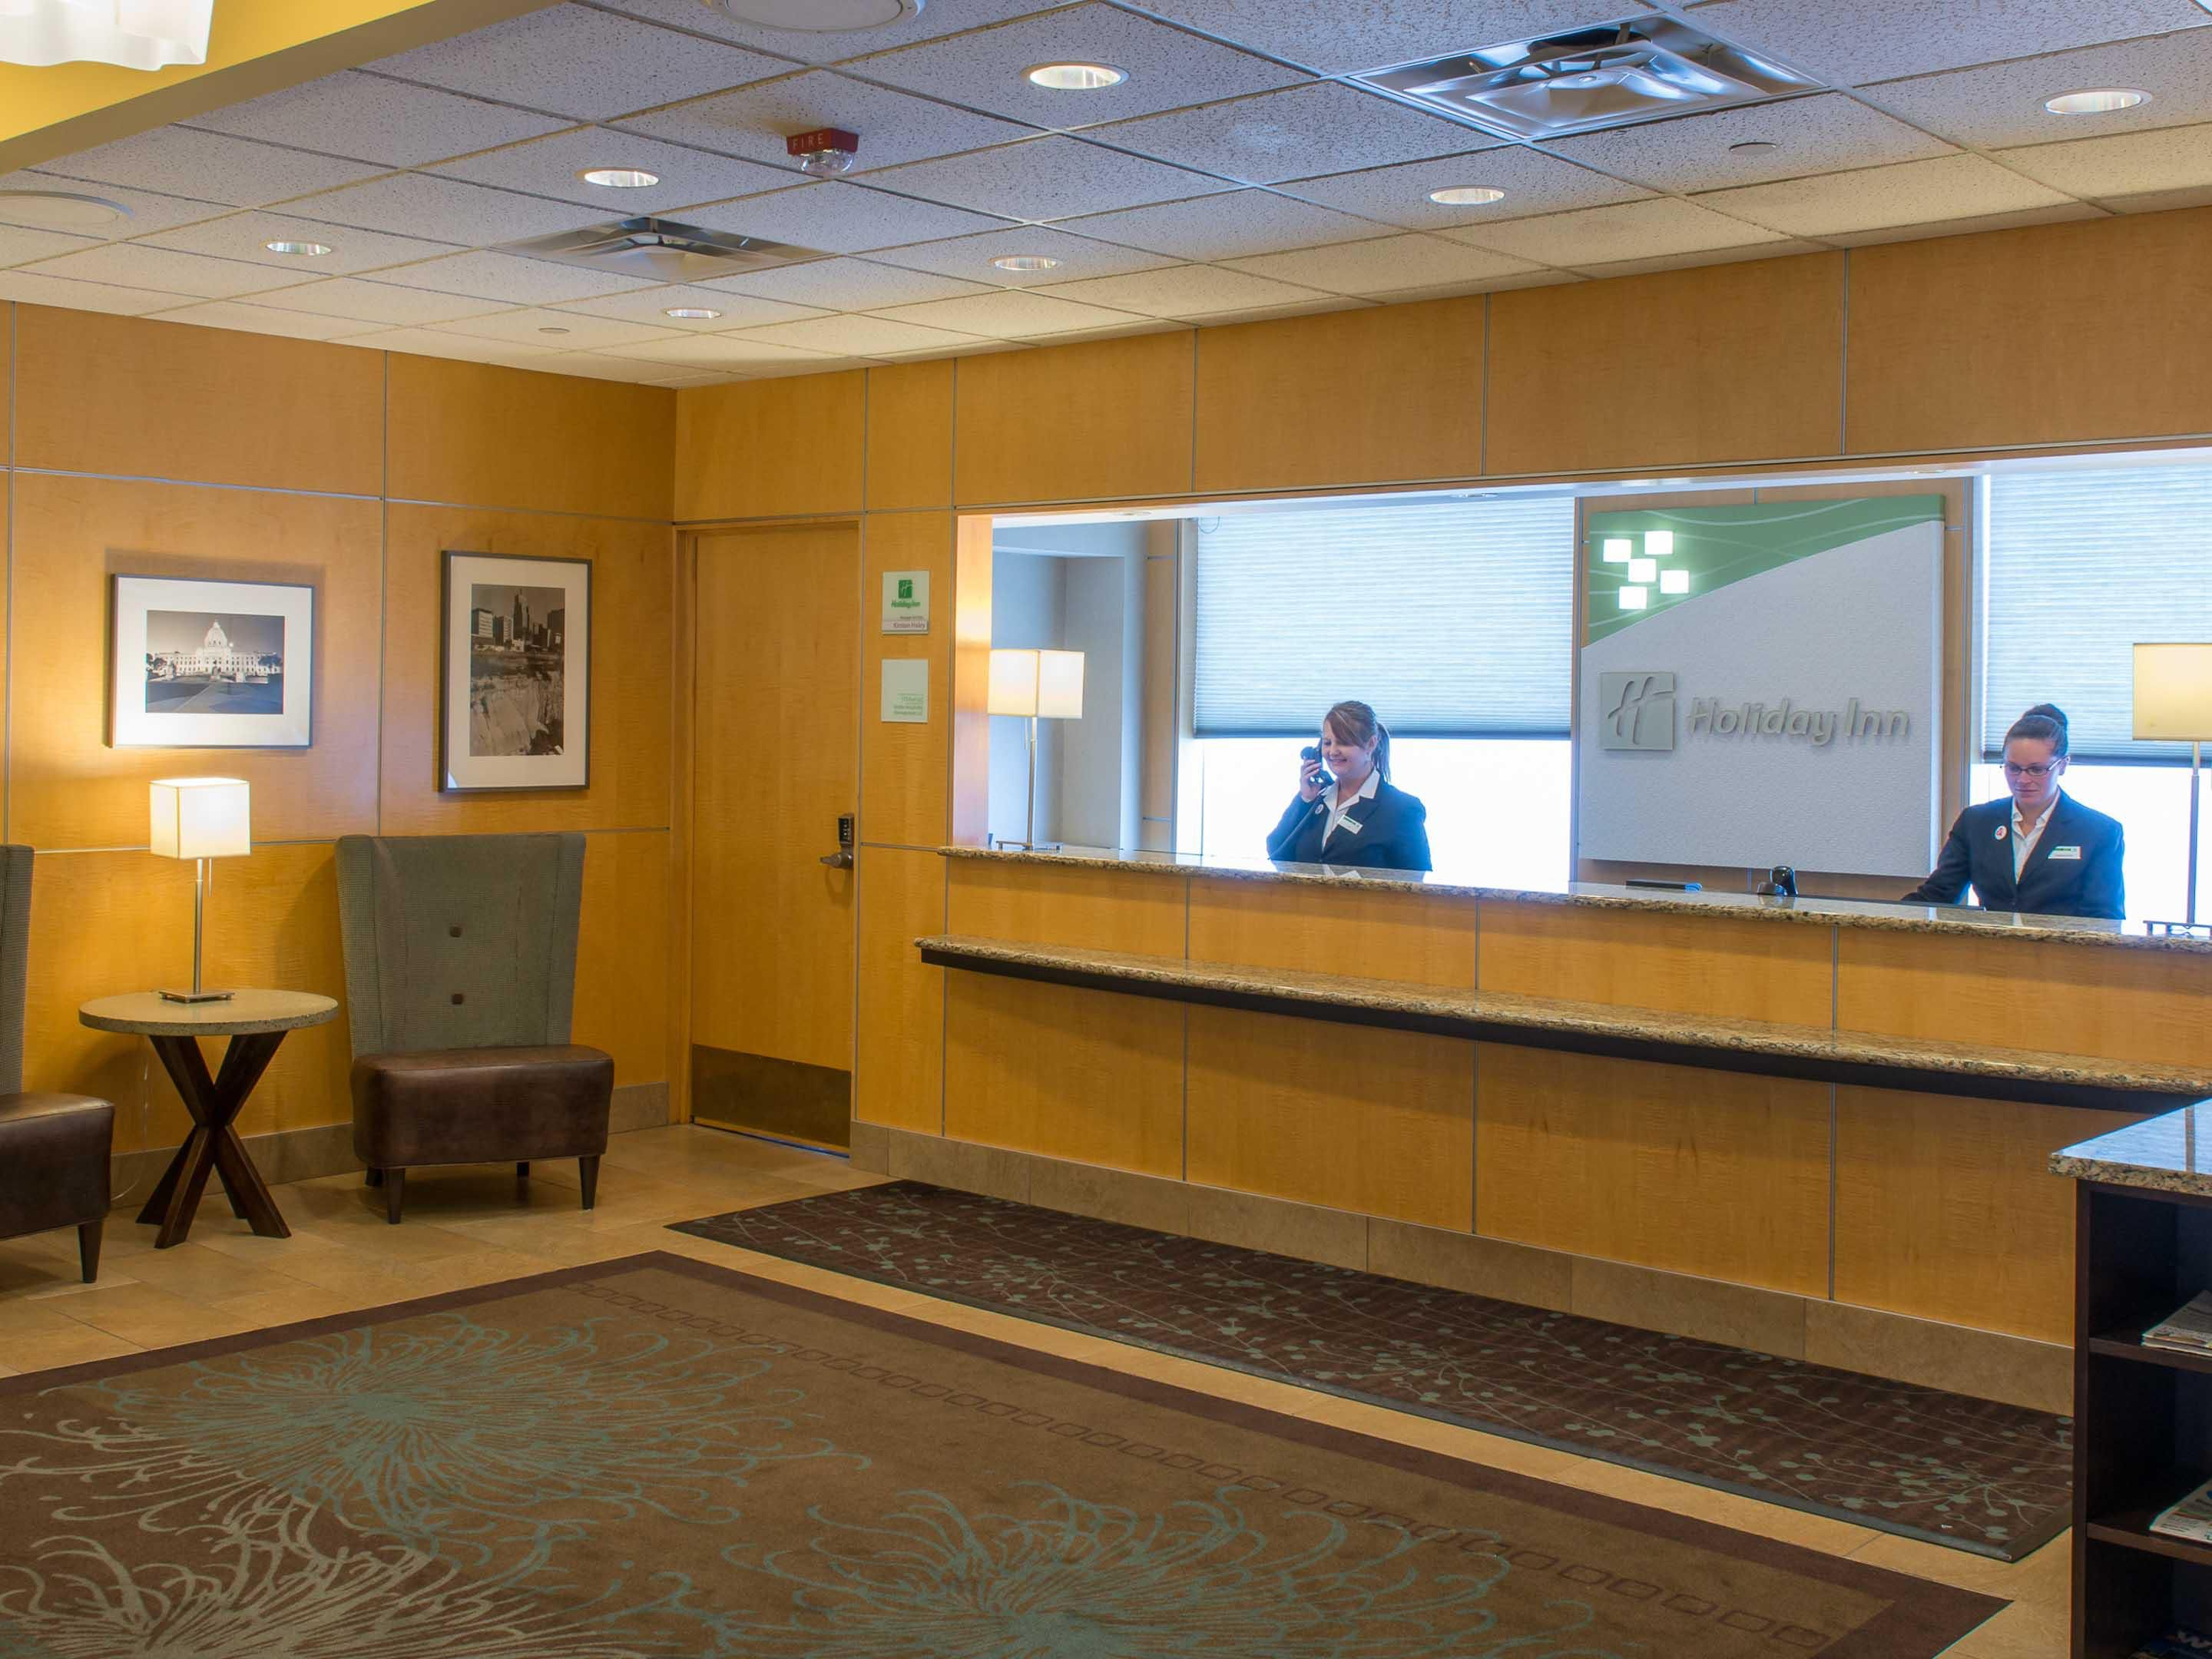 Our knowledgeable Front Desk staff is available 24 hours.